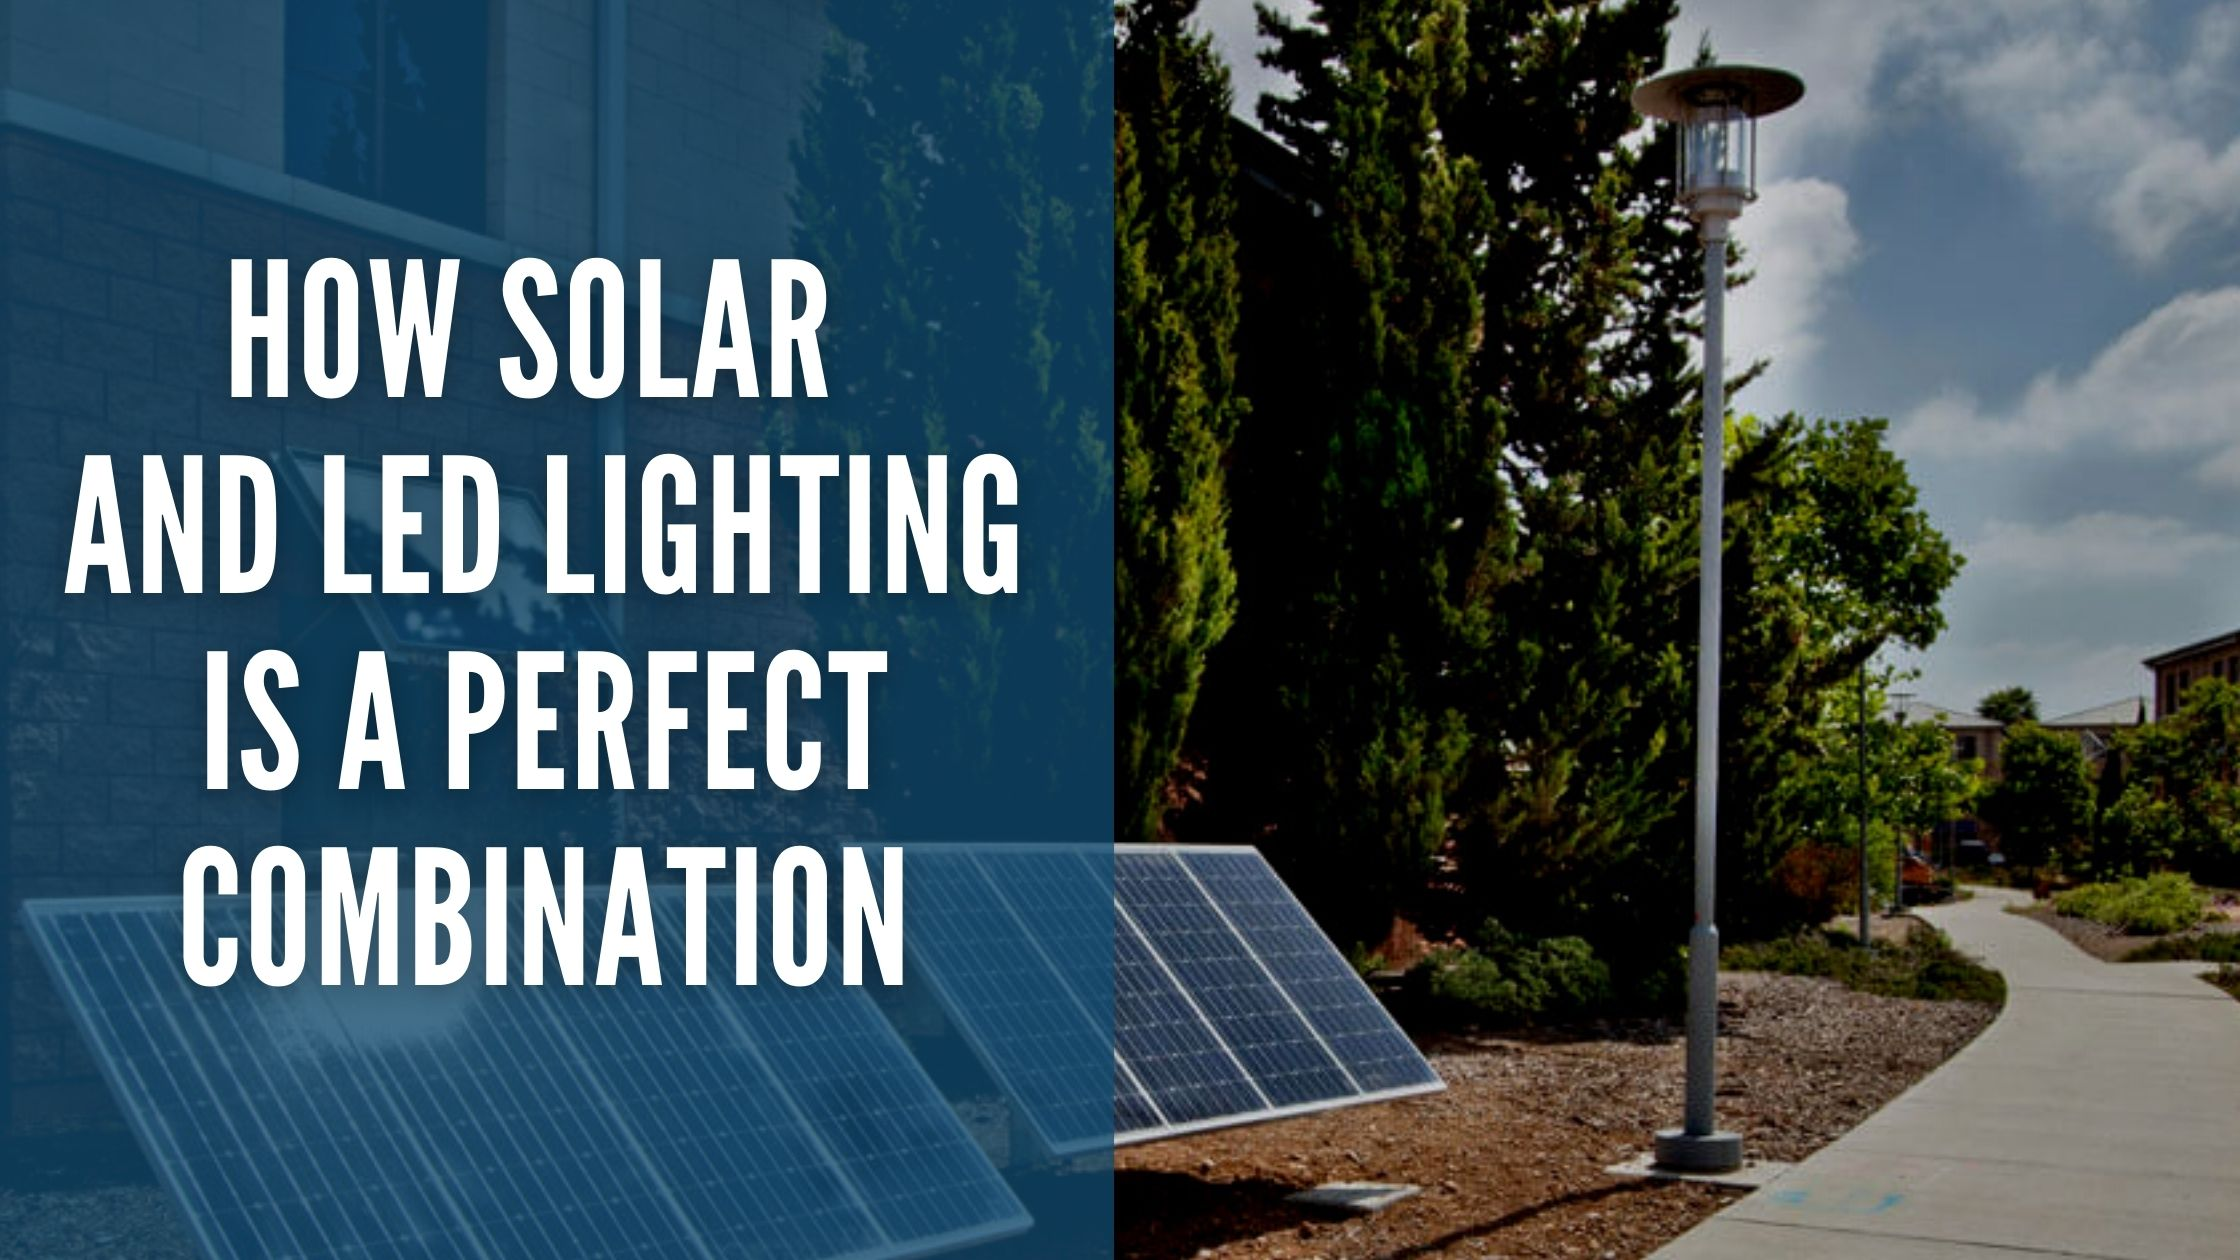 How Solar and LED Lighting is a Perfect Combination